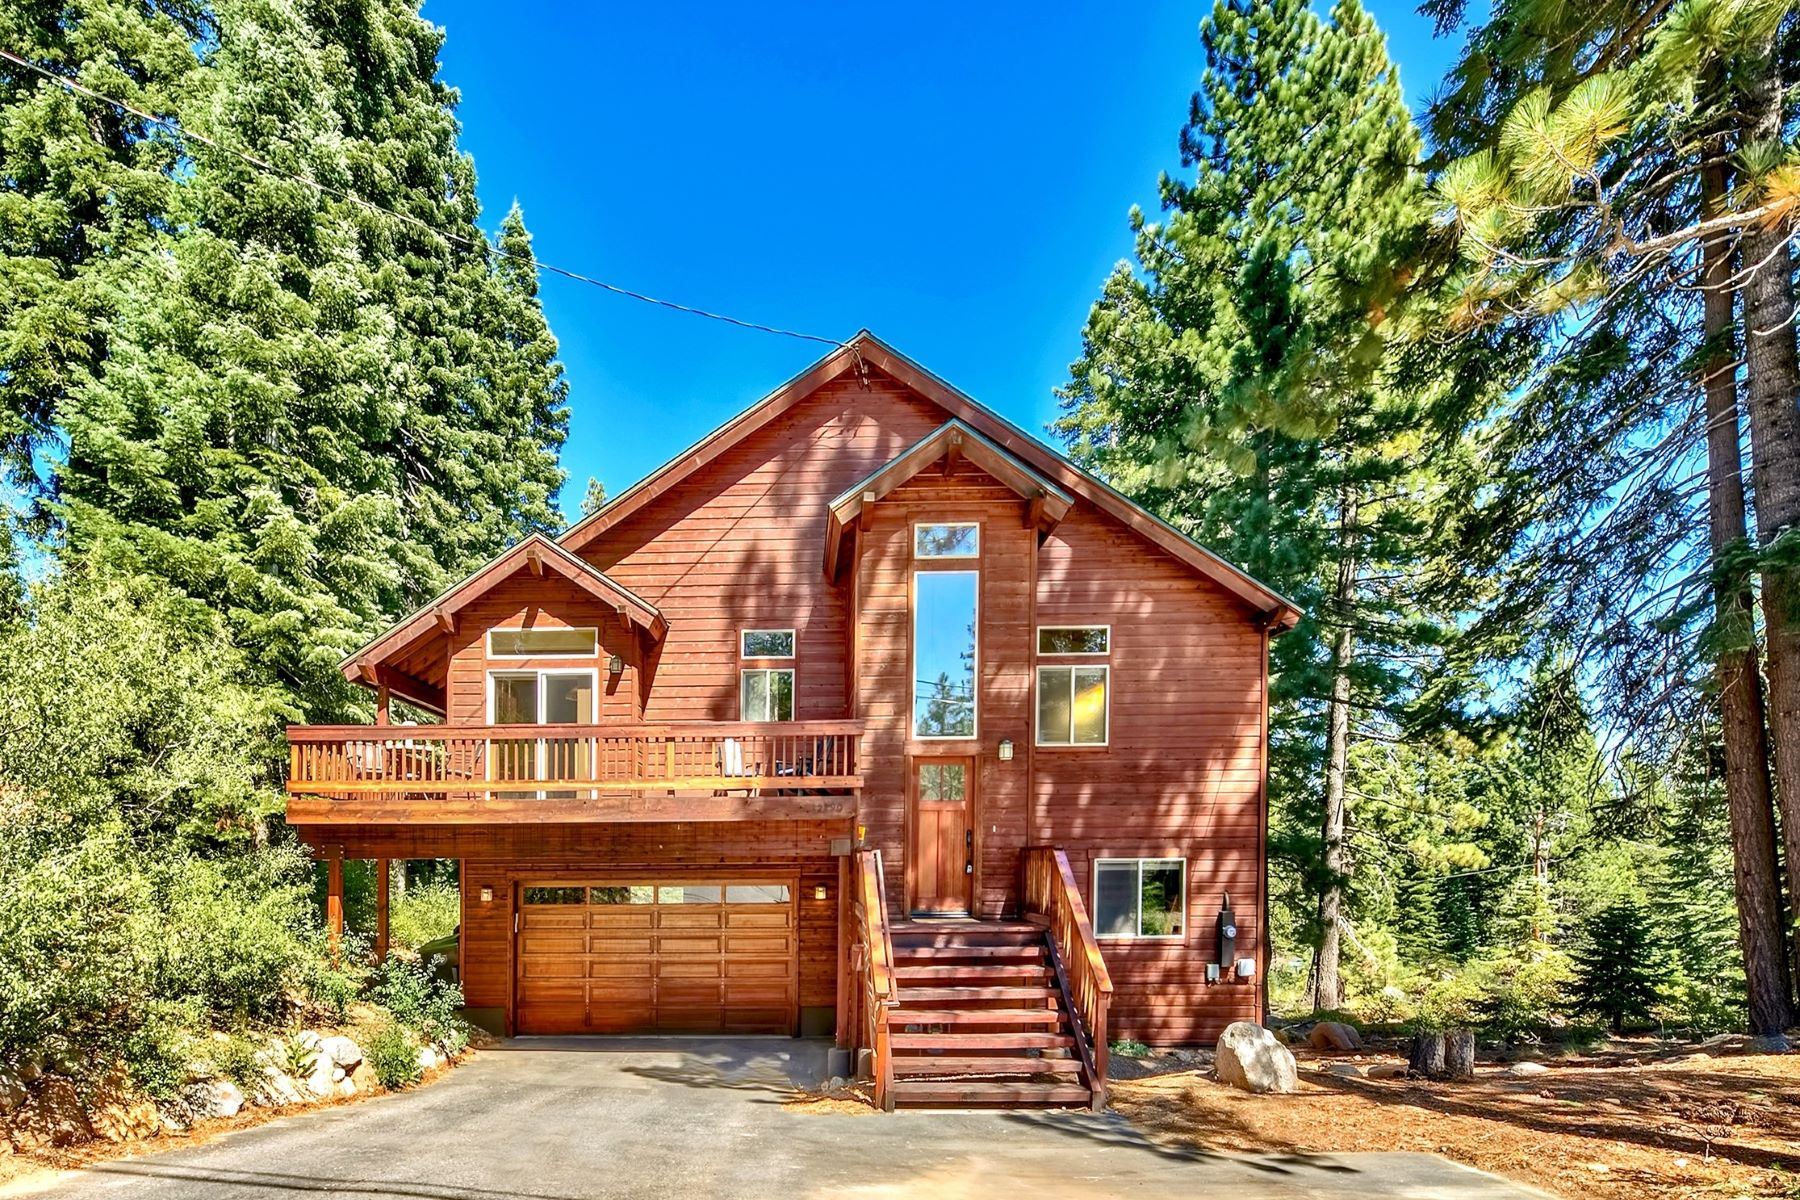 Single Family Homes for Active at 12890 Davos Drive, Truckee, CA 96161 12890 Davos Drive Truckee, California 96161 United States